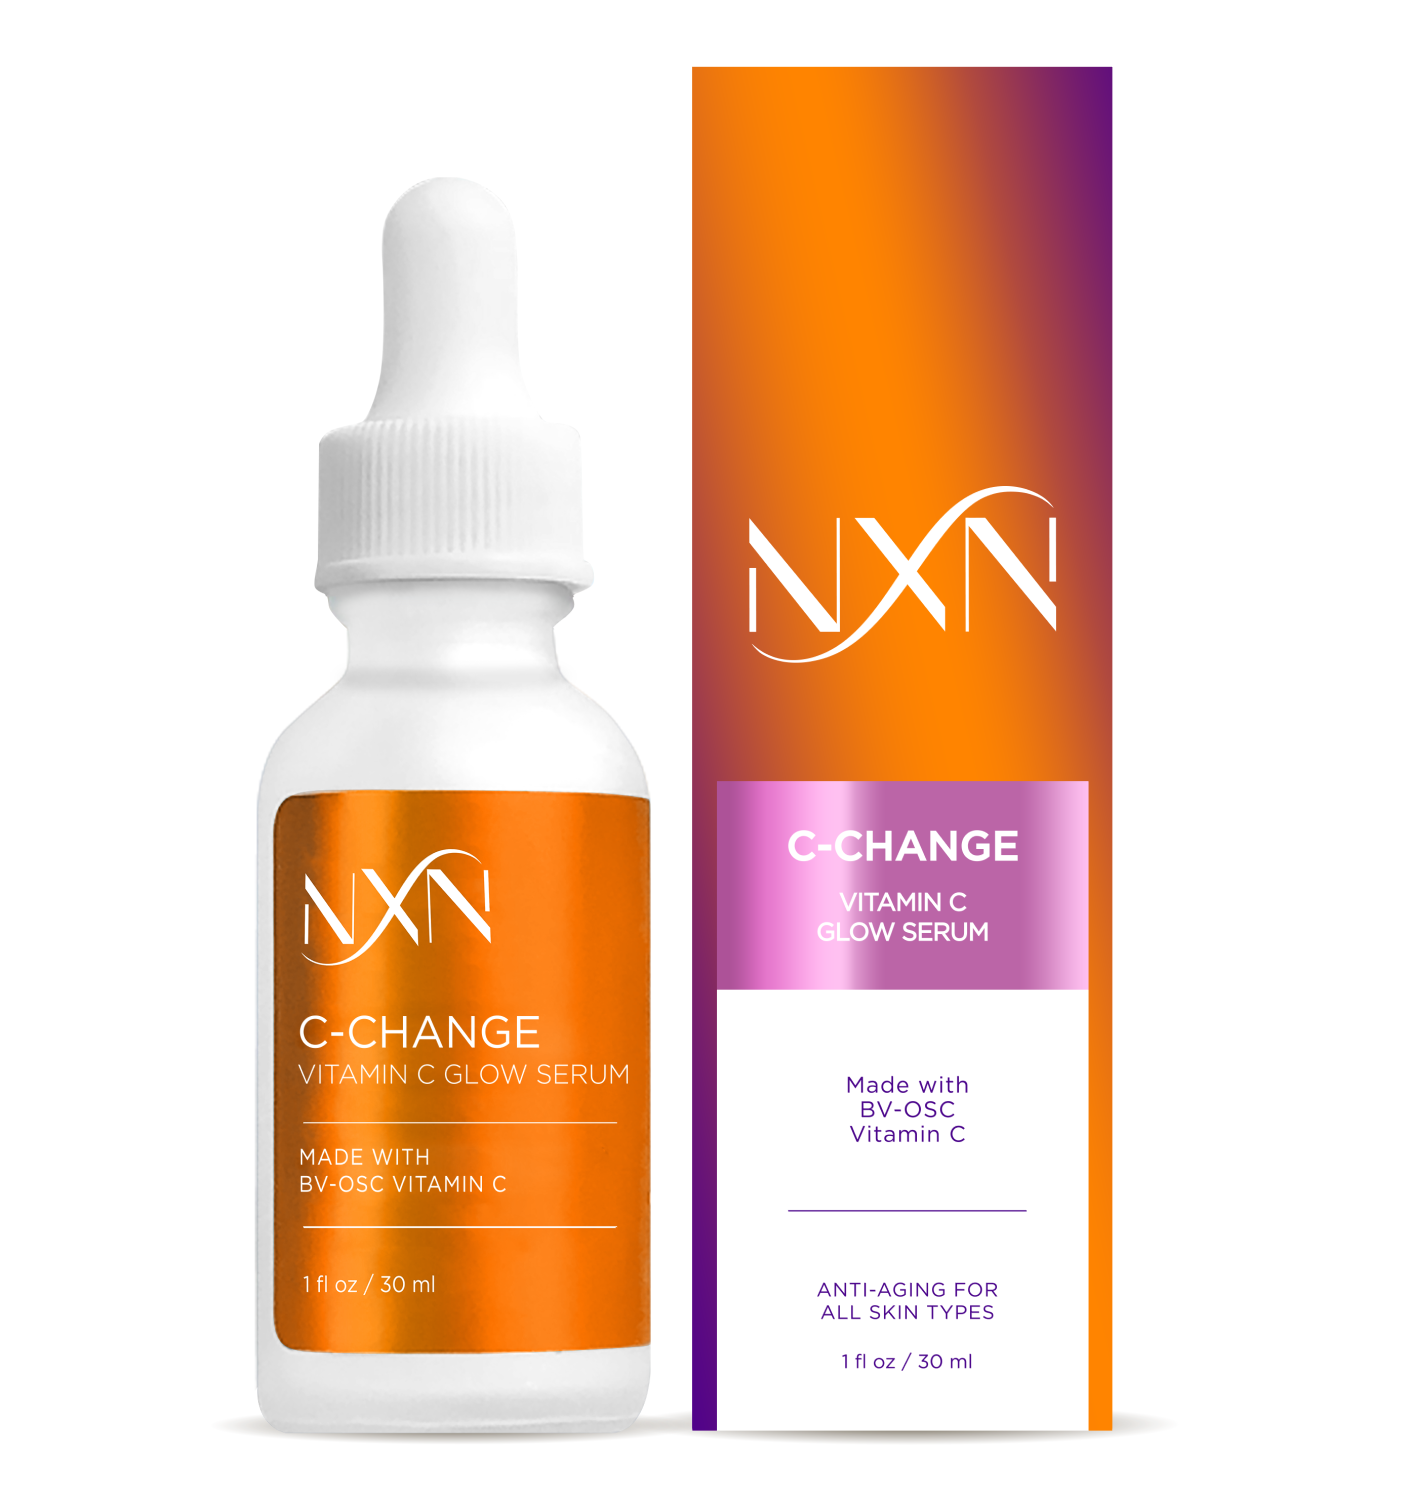 C-CHANGE - VITAMIN C GLOW SERUM